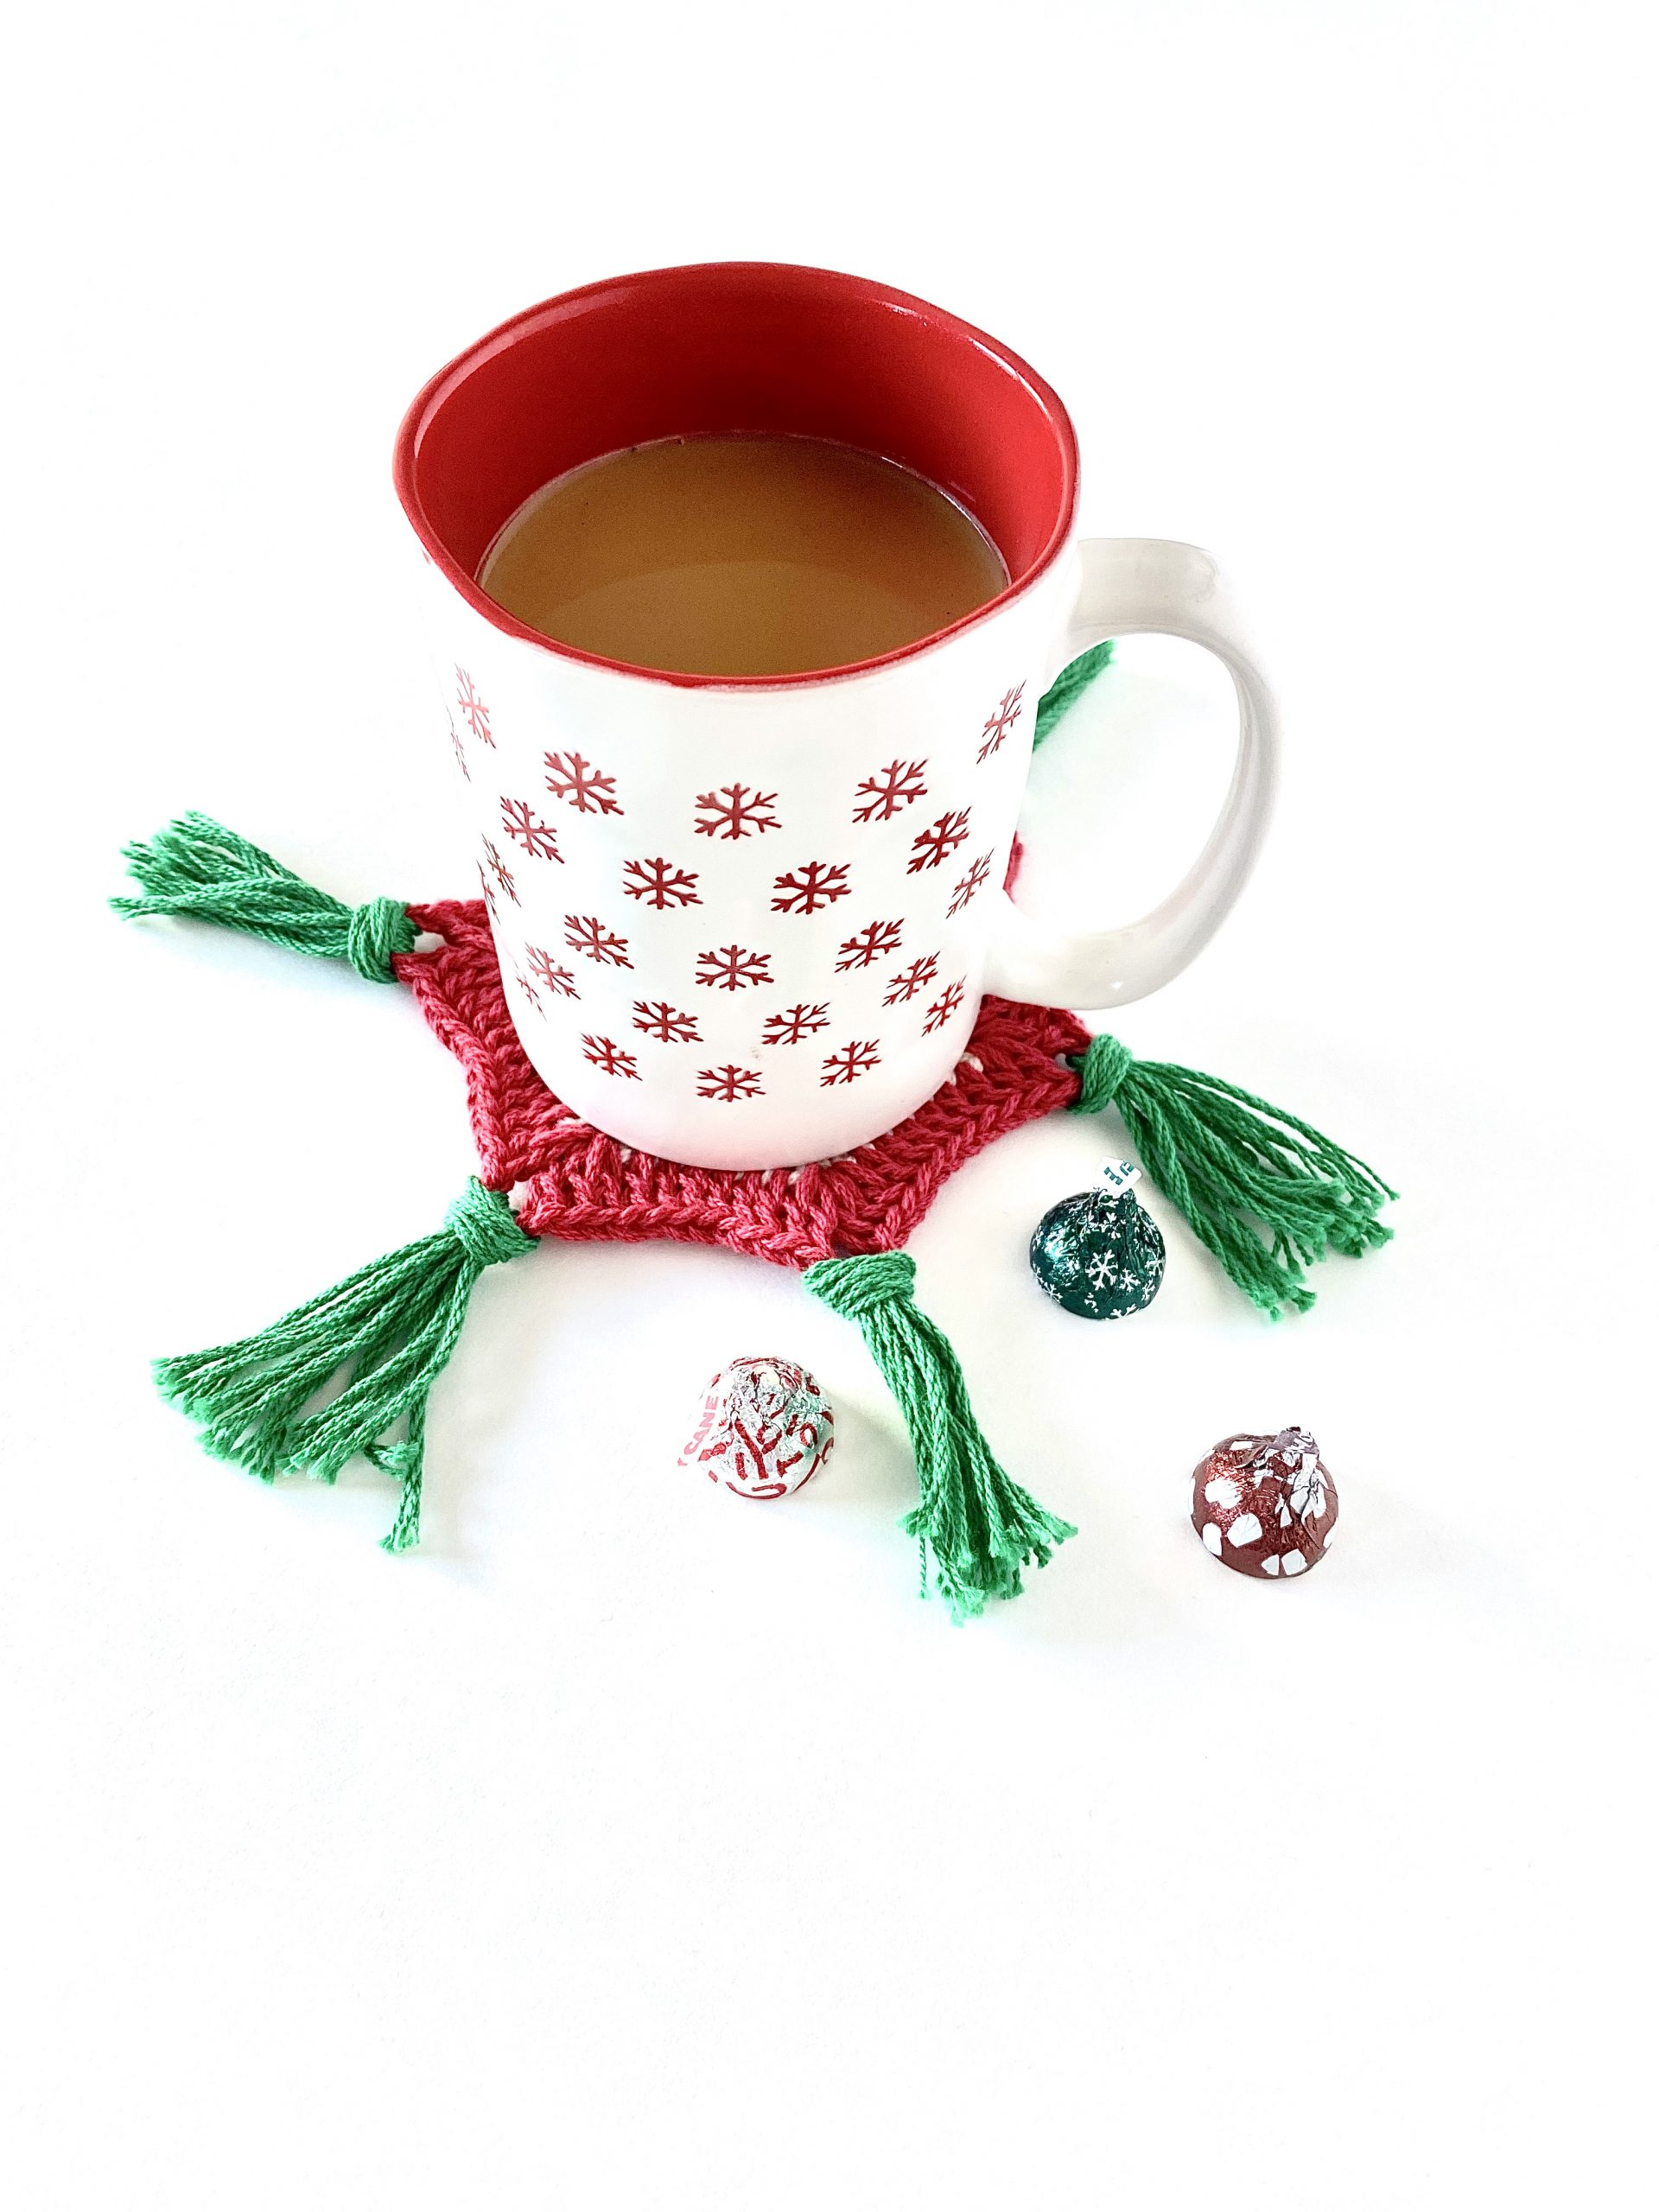 Scandinavian Holiday Coasters crochet pattern by Little Monkeys Designs